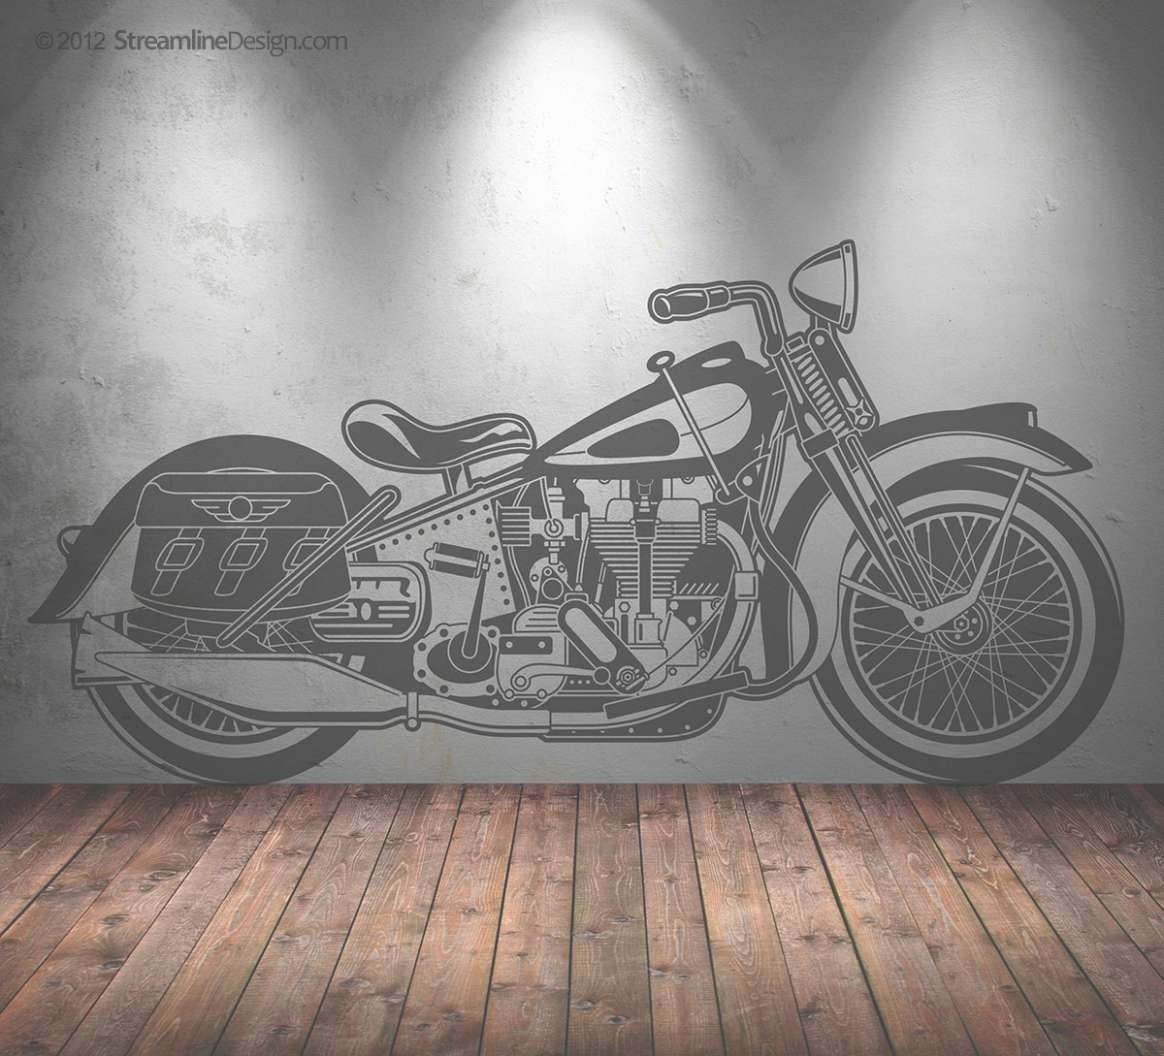 Wall Art Designs Motorcycle Wall Art Life Size Vintage Retro With throughout Motorcycle Wall Art (Image 20 of 20)